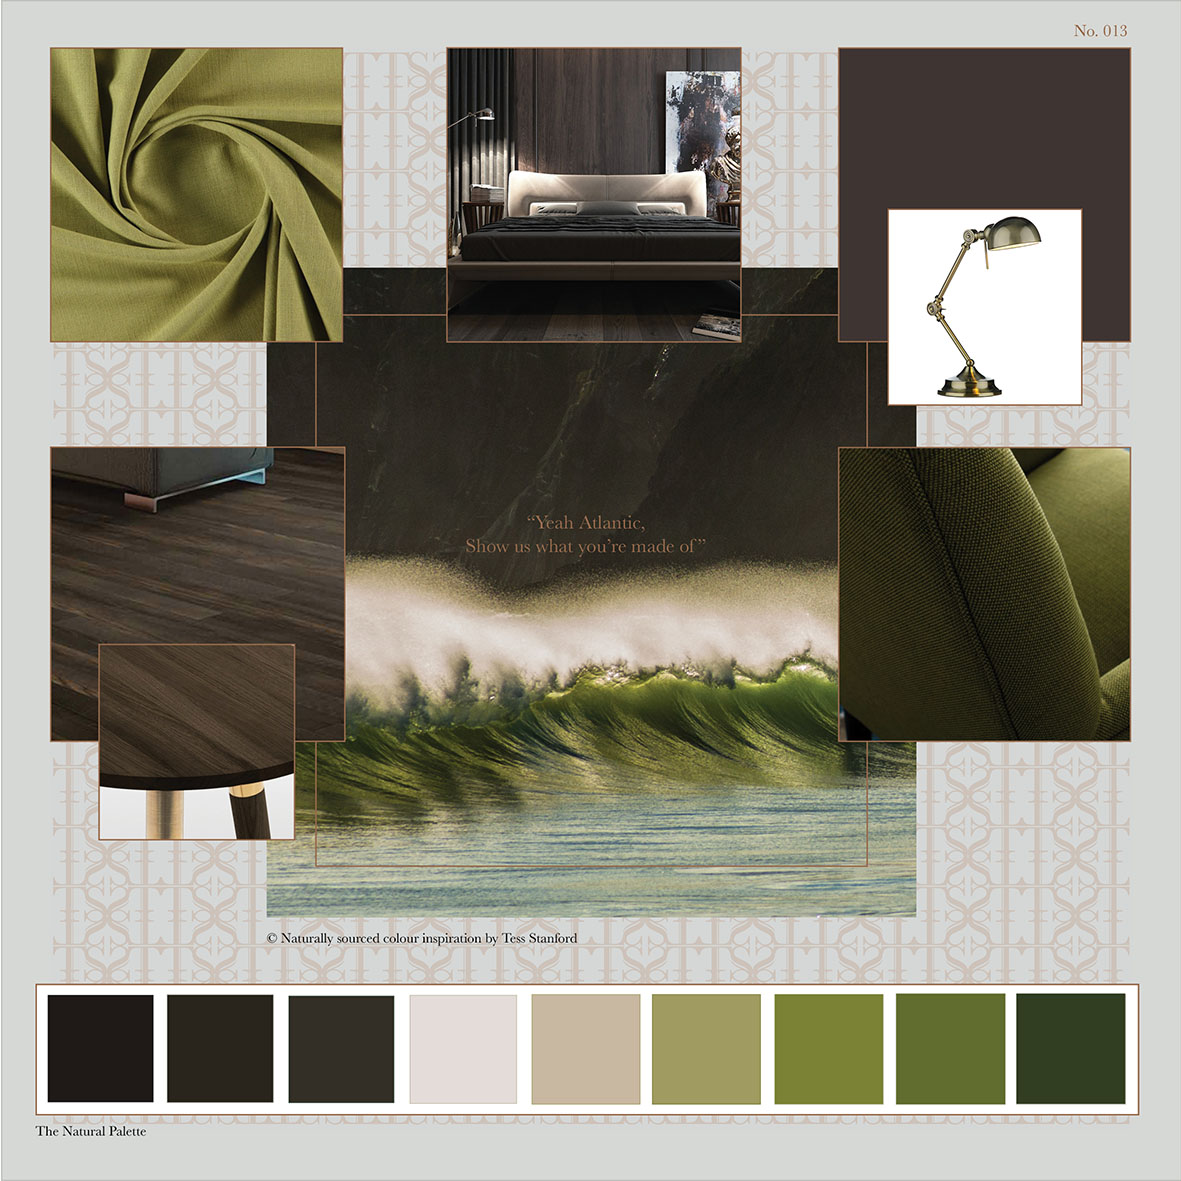 Tess Stanford Interior Design Colour inspiration Blog No 013